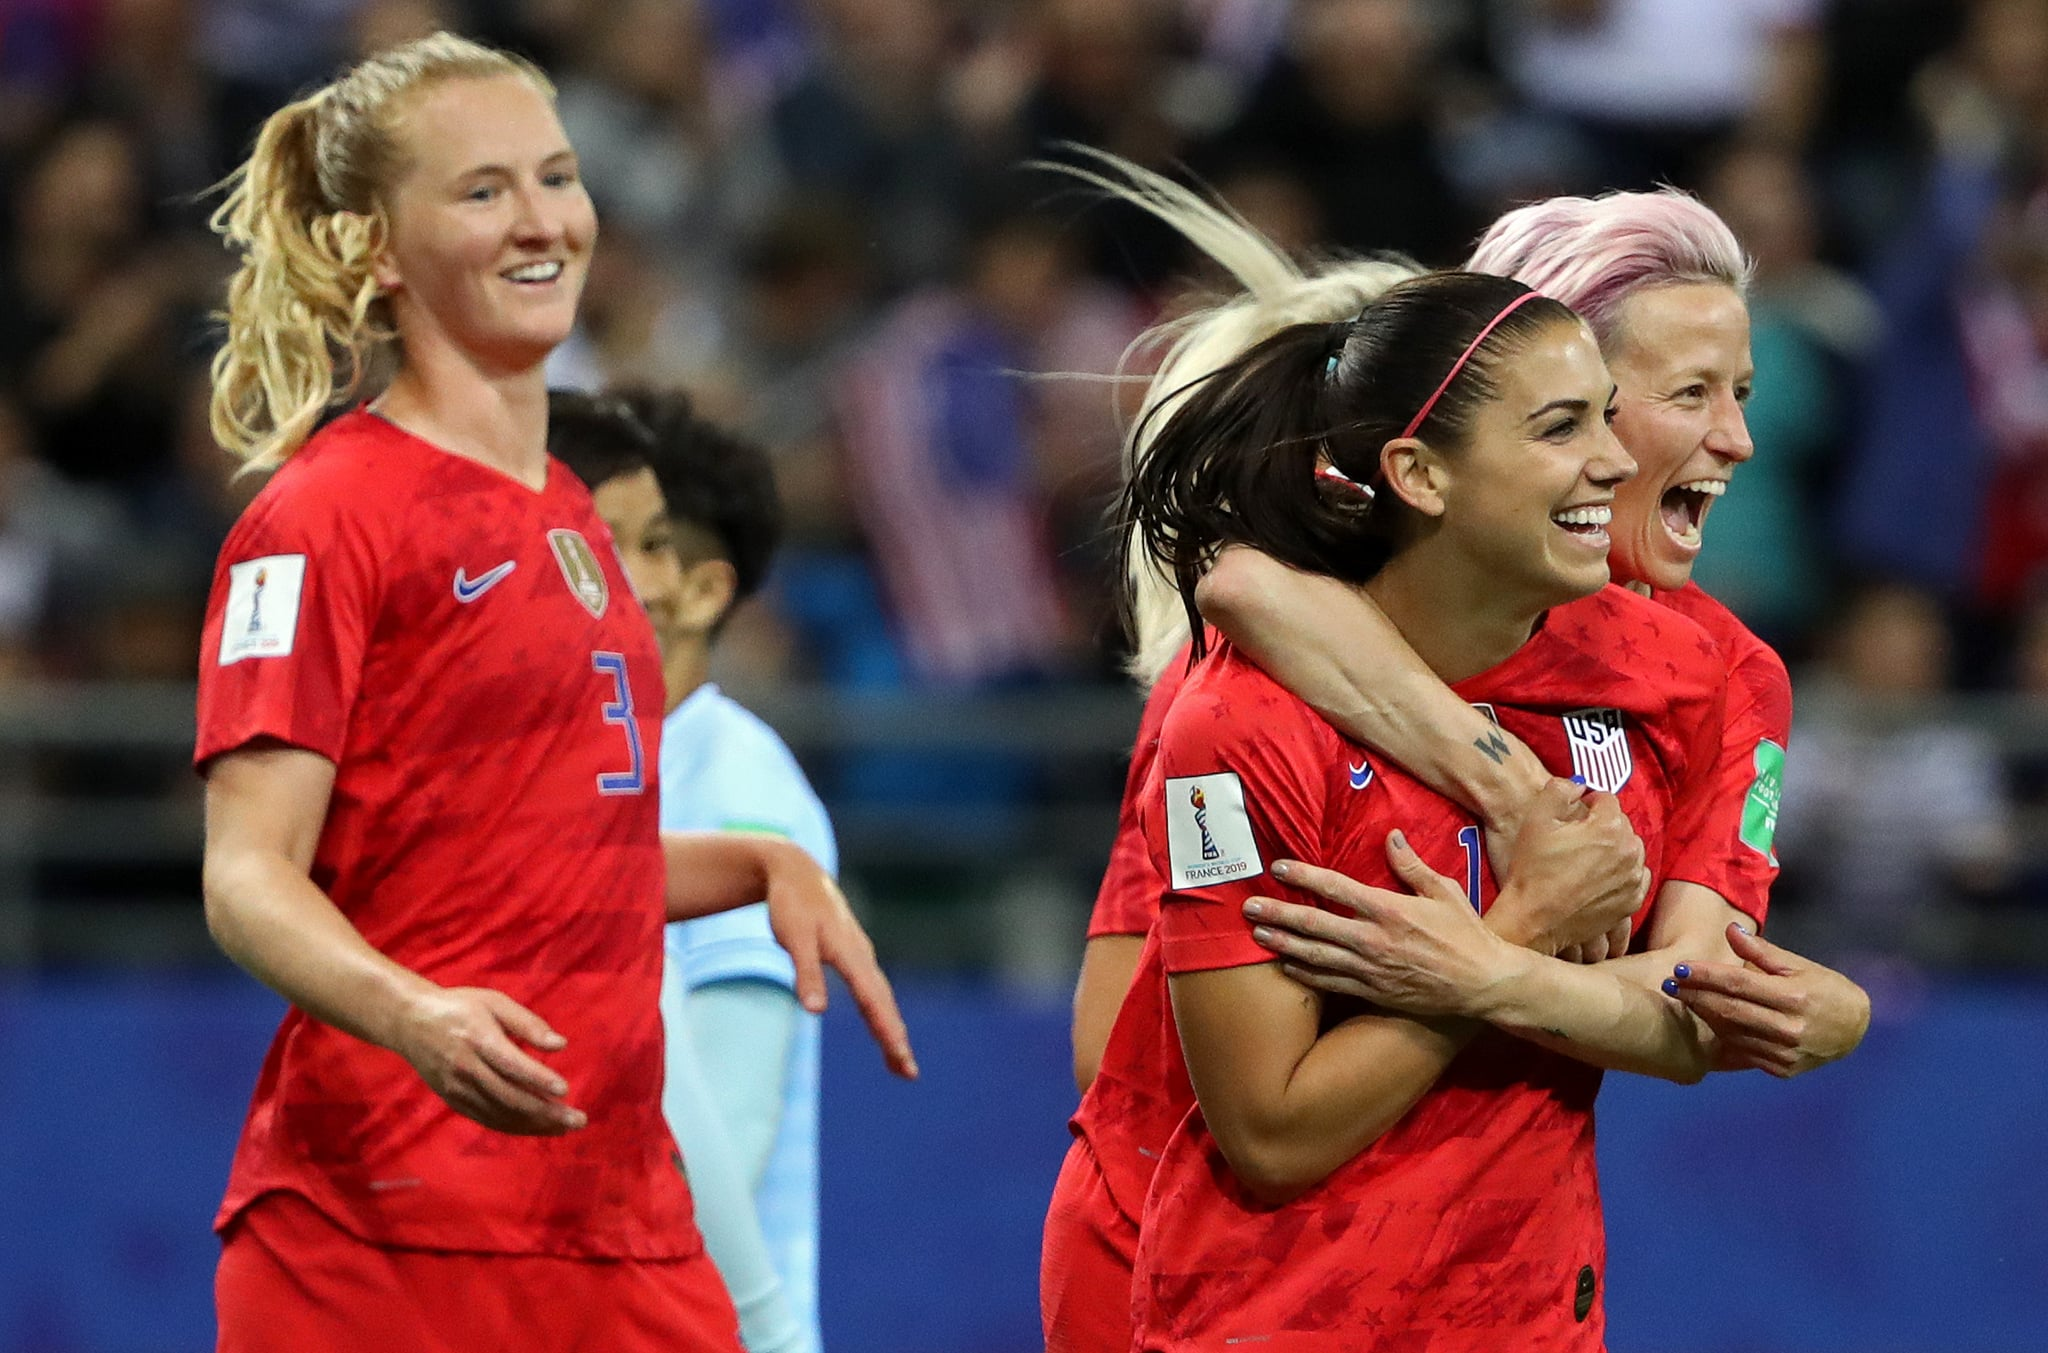 REIMS, FRANCE - JUNE 11: Alex Morgan of the USA celebrates with teammates after scoring her team's fifth goal during the 2019 FIFA Women's World Cup France group F match between USA and Thailand at Stade Auguste Delaune on June 11, 2019 in Reims, France. (Photo by Robert Cianflone/Getty Images)